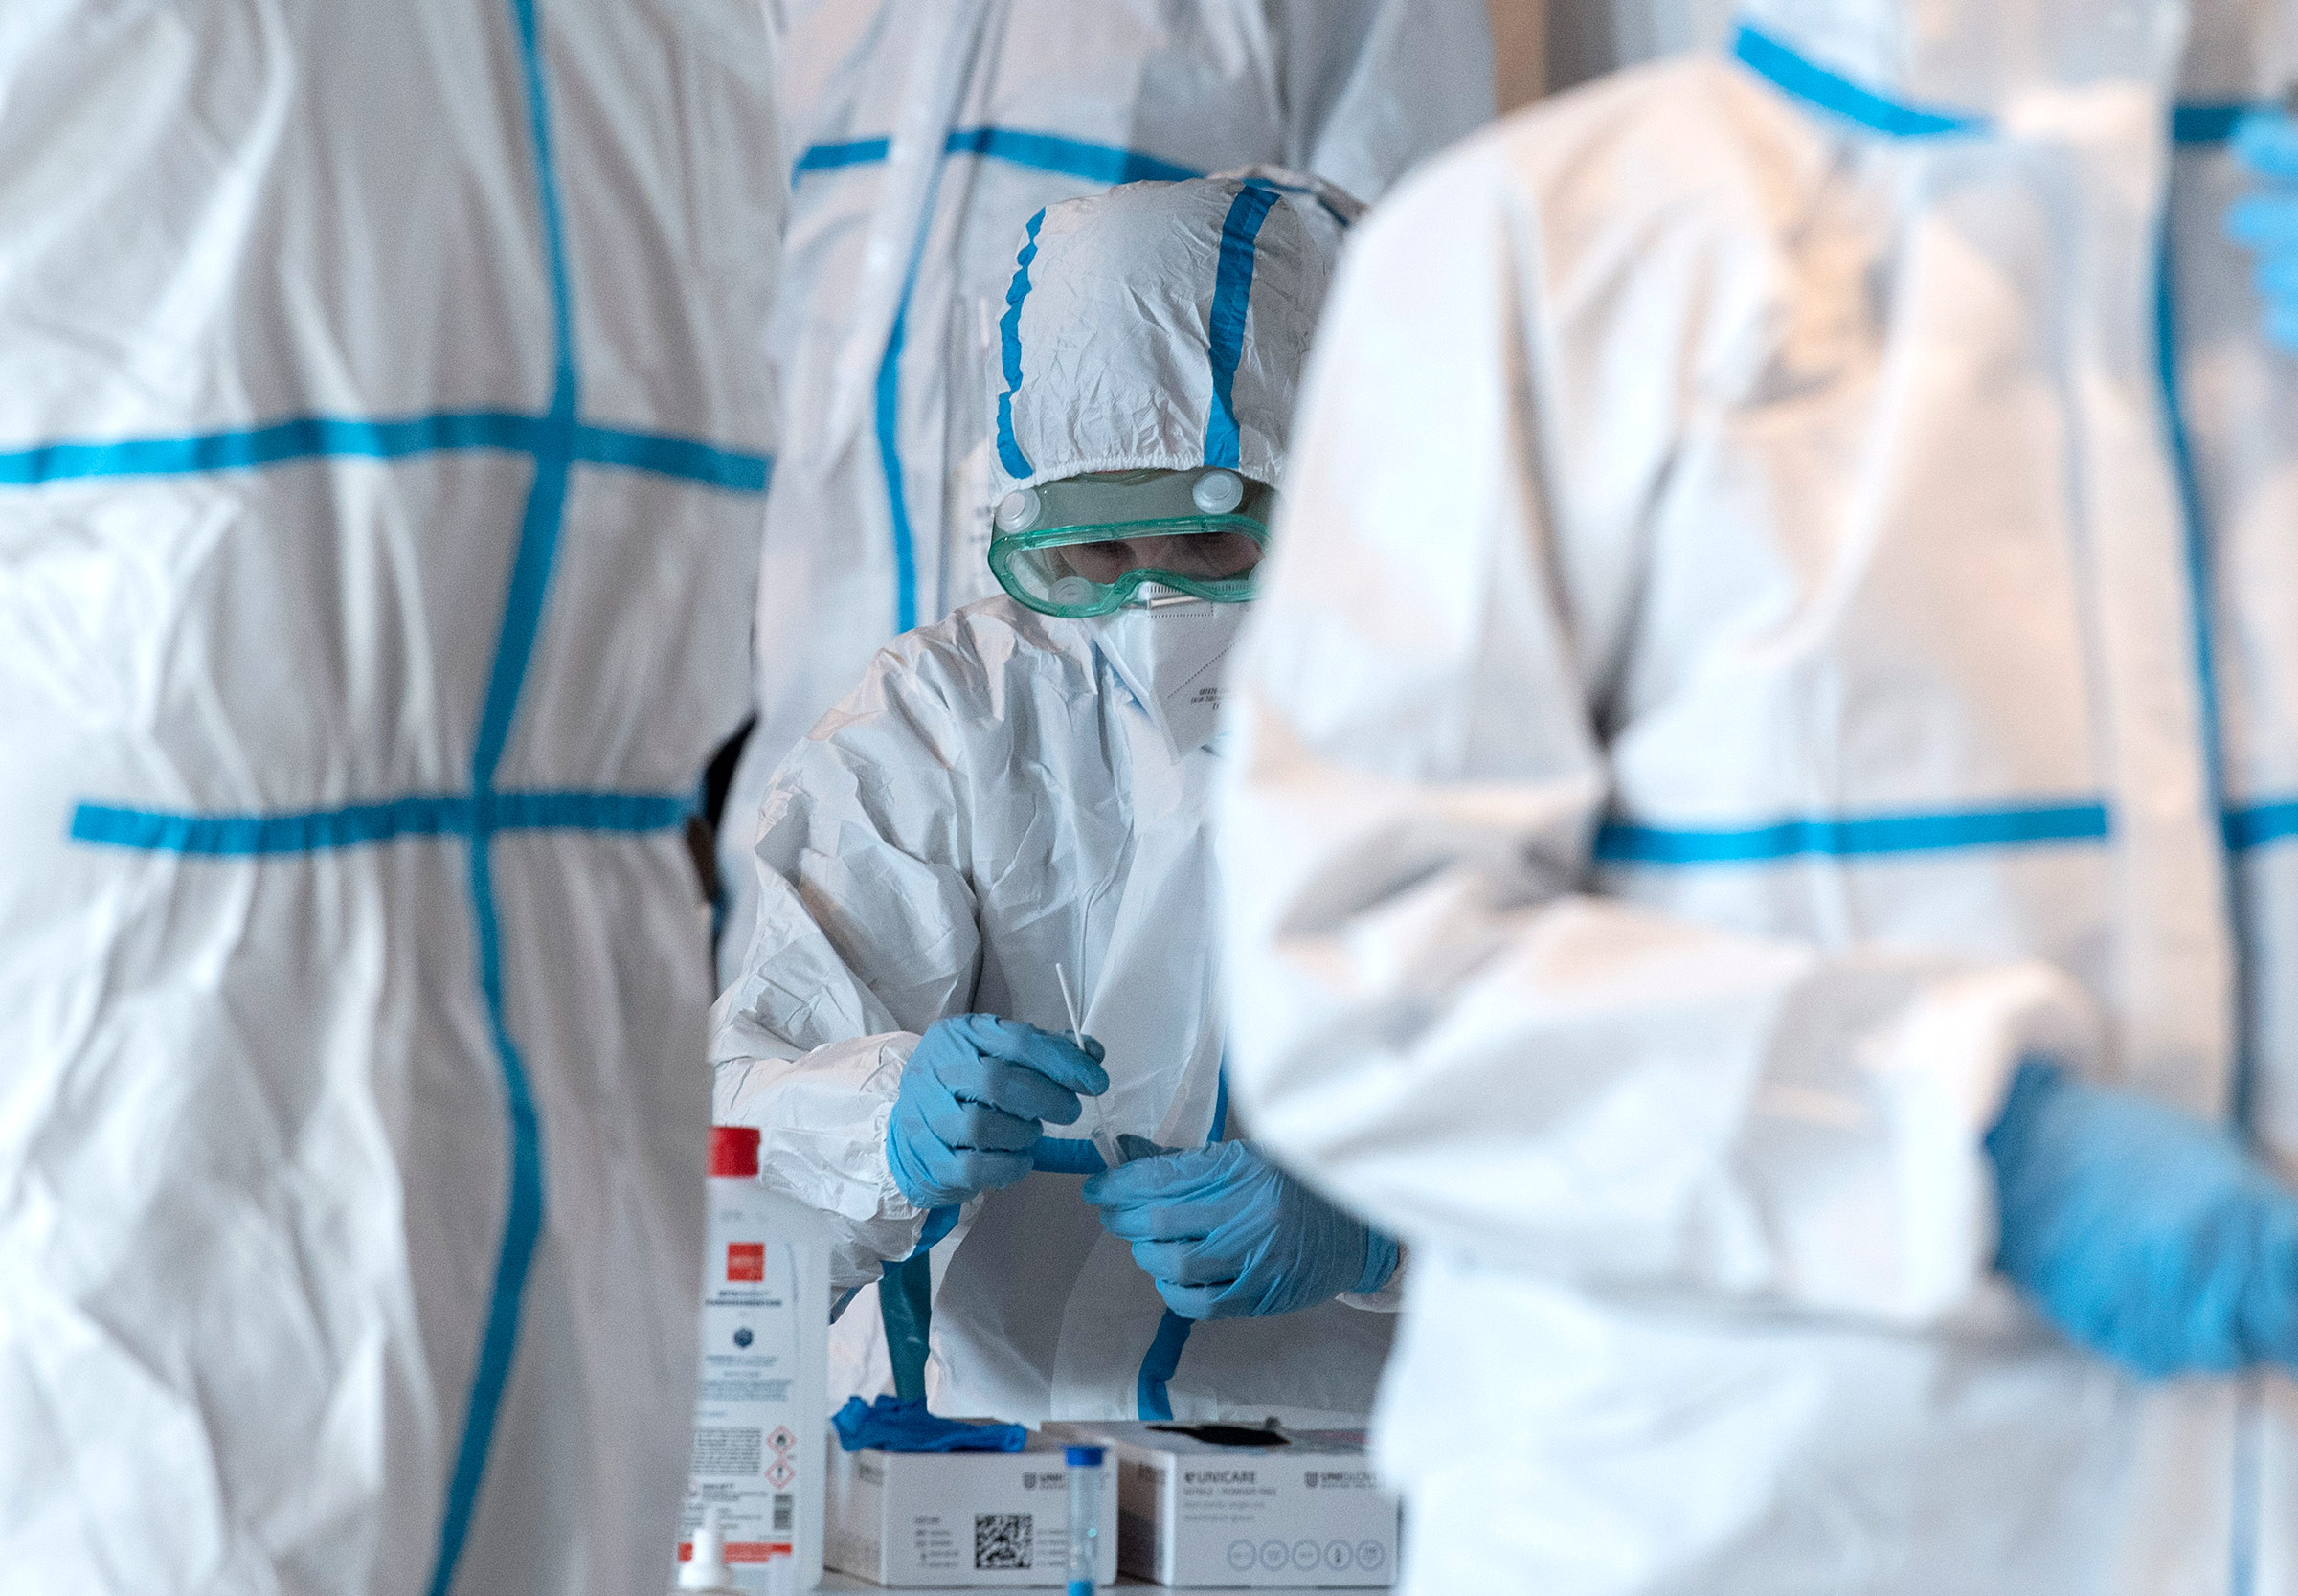 Employees process coronavirus test swabs at a testing center in Mainz, Germany, on March 26.